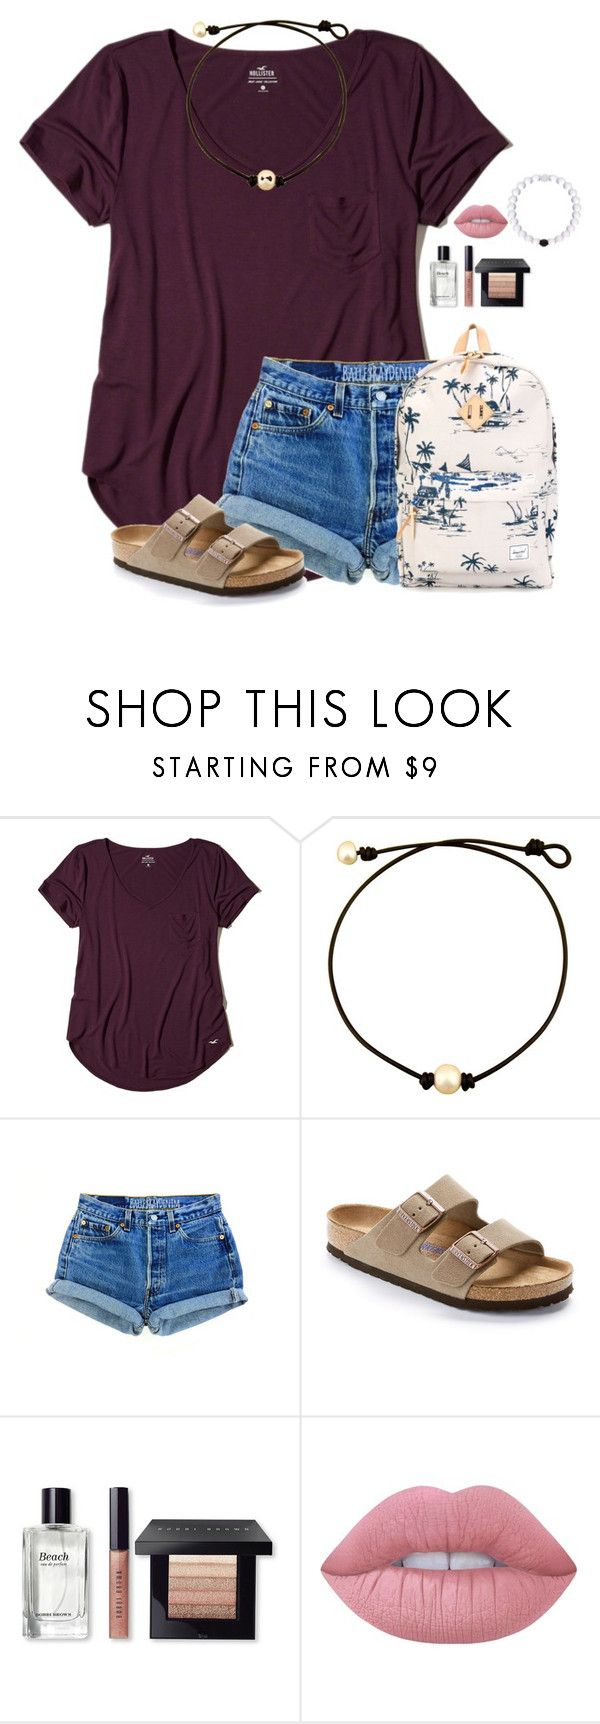 """""""Monday at school"""" by victoriaann34 ❤ liked on Polyvore featuring Hollister Co., Birkenstock, Bobbi Brown Cosmetics, Lime Crime and Herschel Supply Co."""